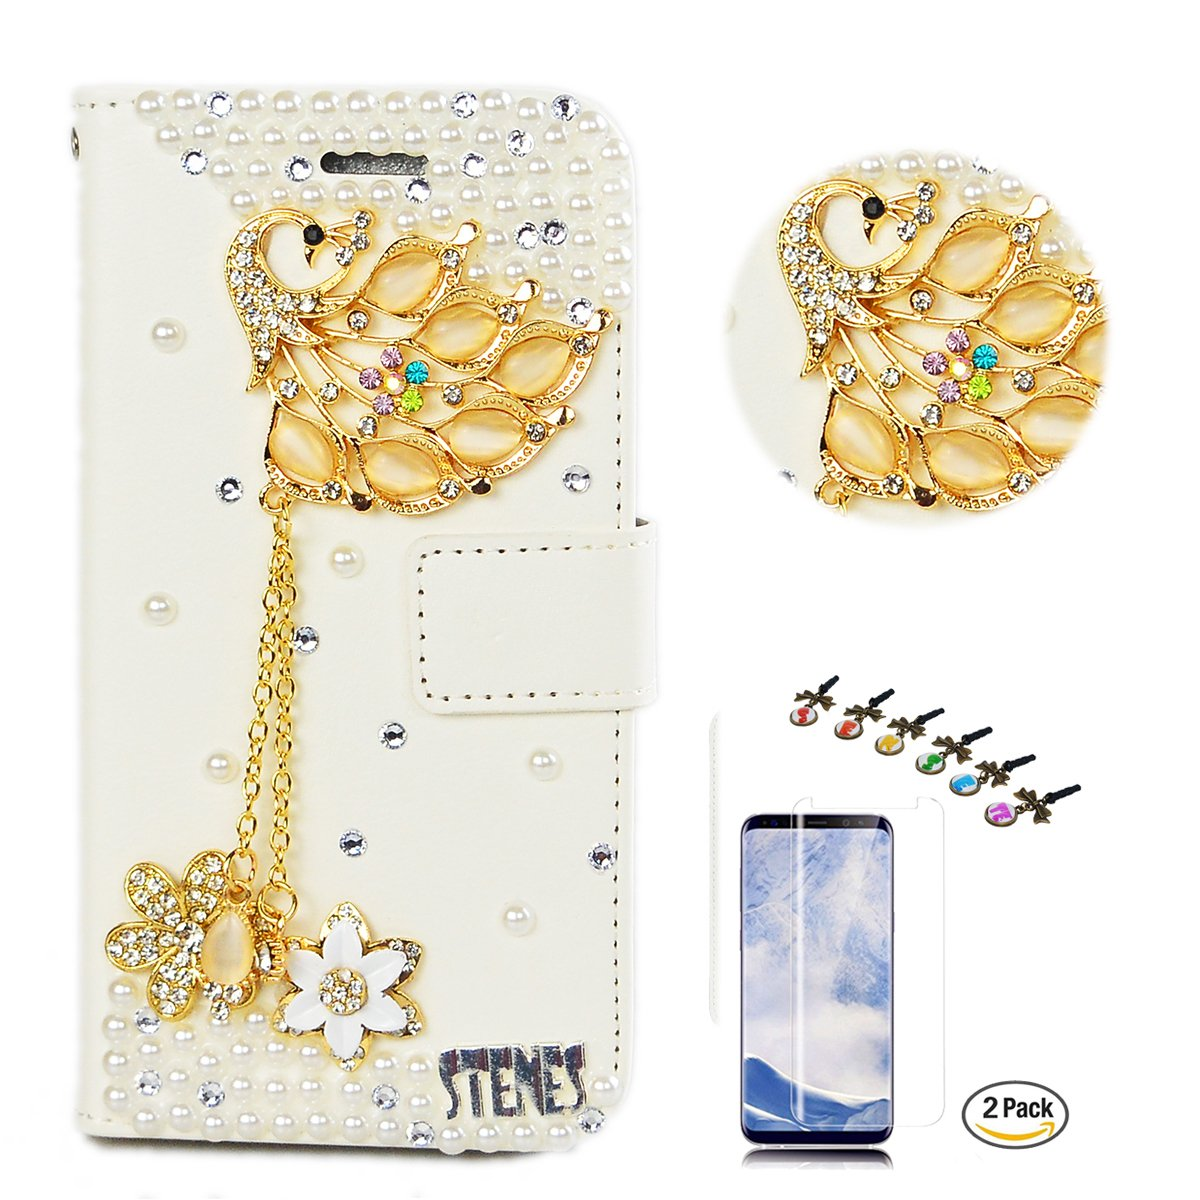 STENES LG V35 ThinQ Case - Stylish - 3D Handmade Crystal Luxury Peacock Pendant Flowers Wallet Credit Card Slots Fold Media Stand Leather Cover with Screen Protector for LG V35 ThinQ - Gold